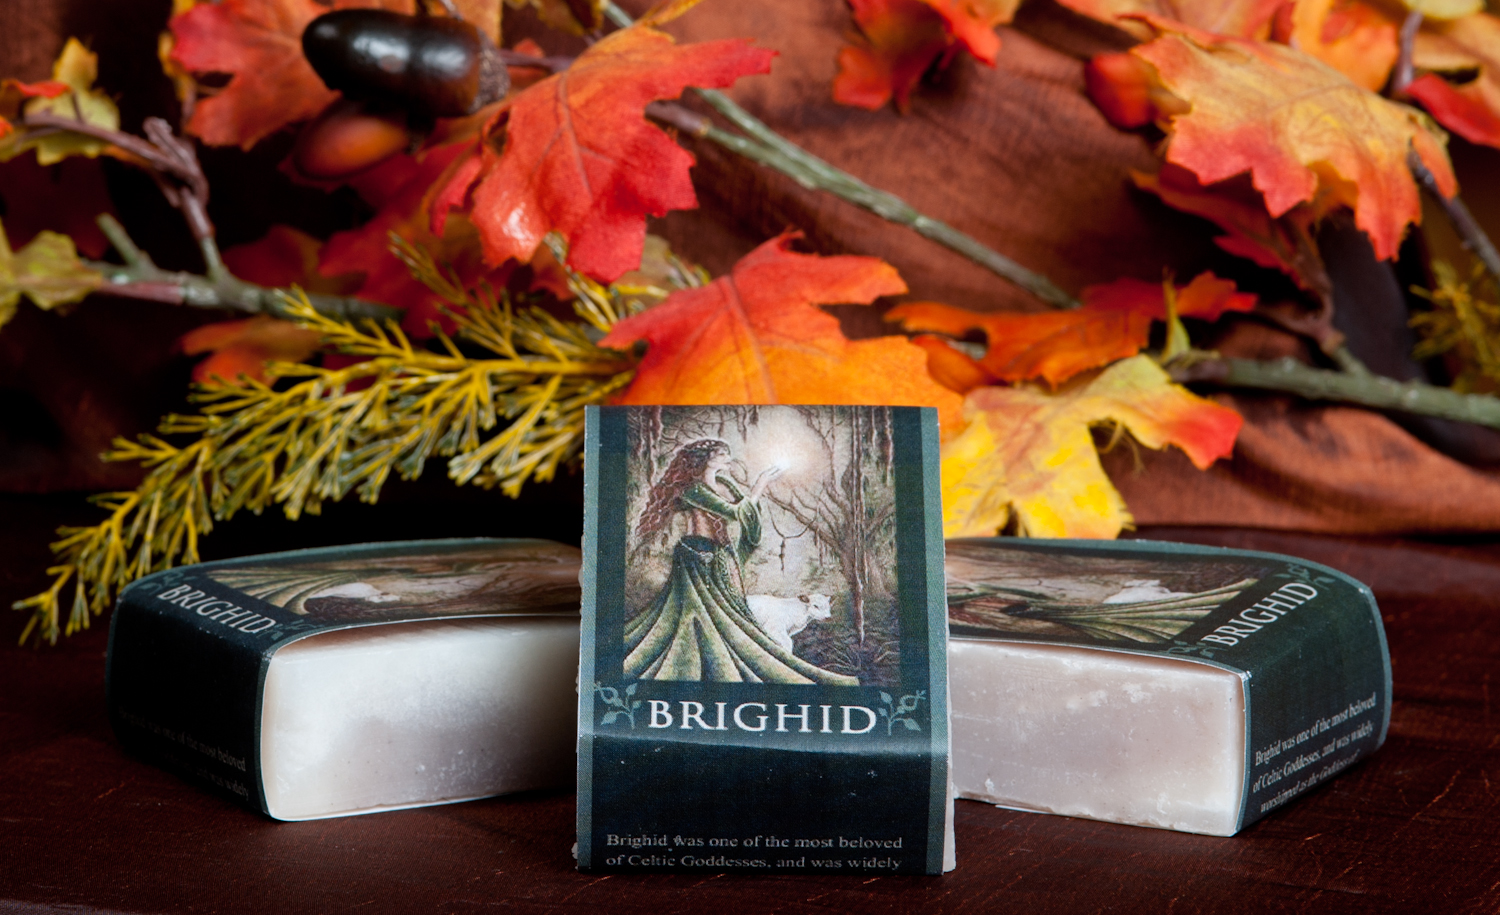 Brighid Soap